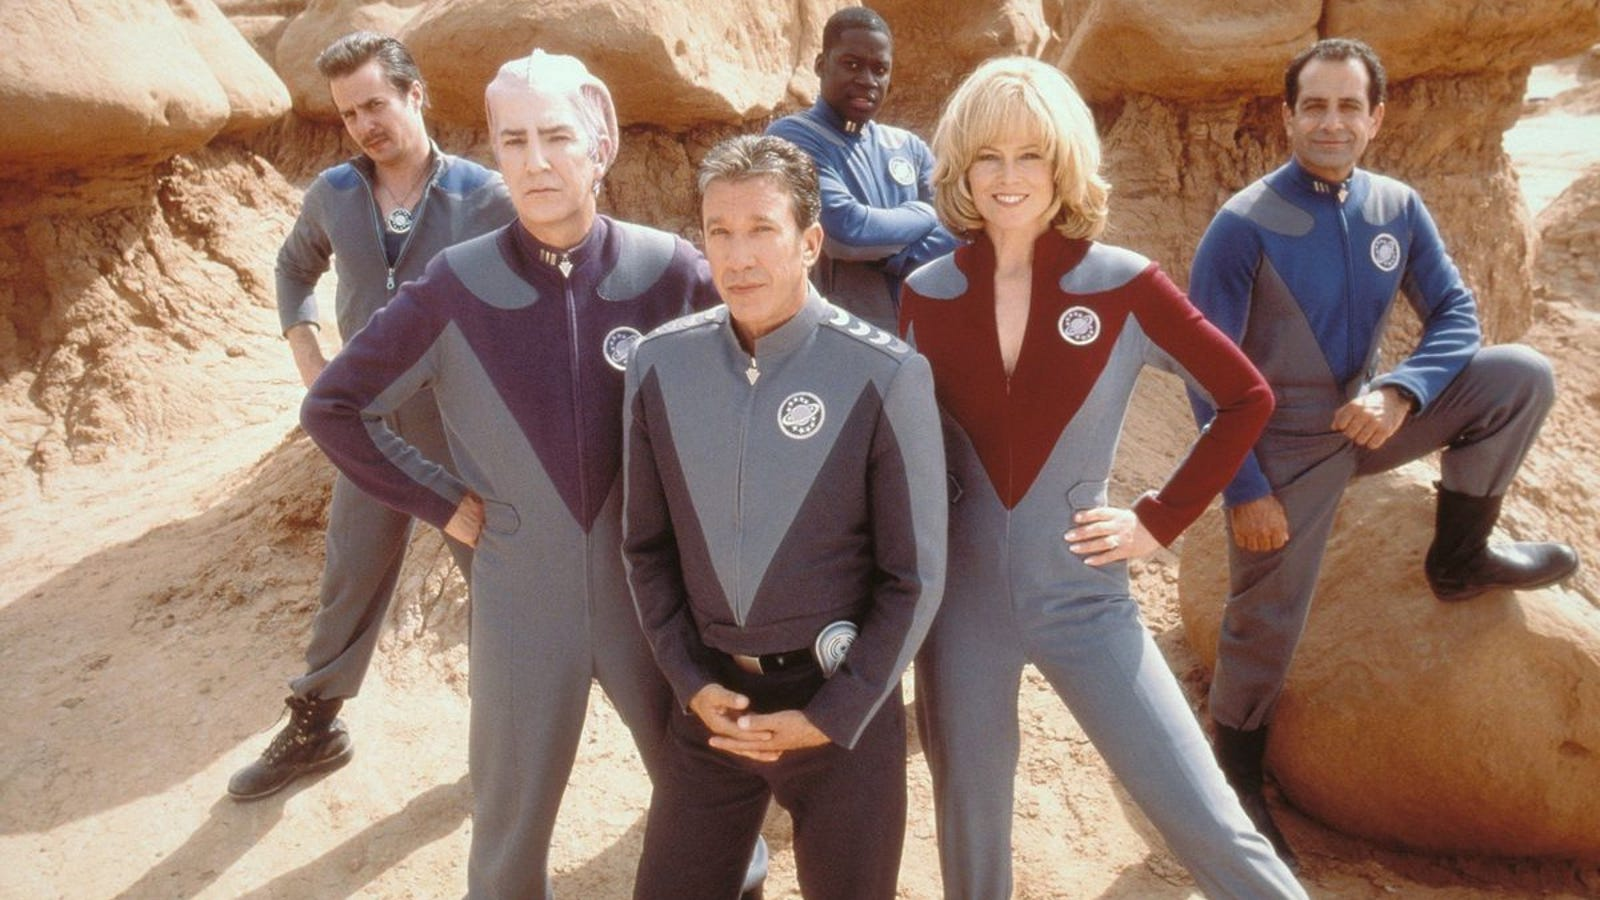 low priced 9dd45 be08e By Grabthar s Hammer, Sci-Fi Comedy Galaxy Quest Is Getting